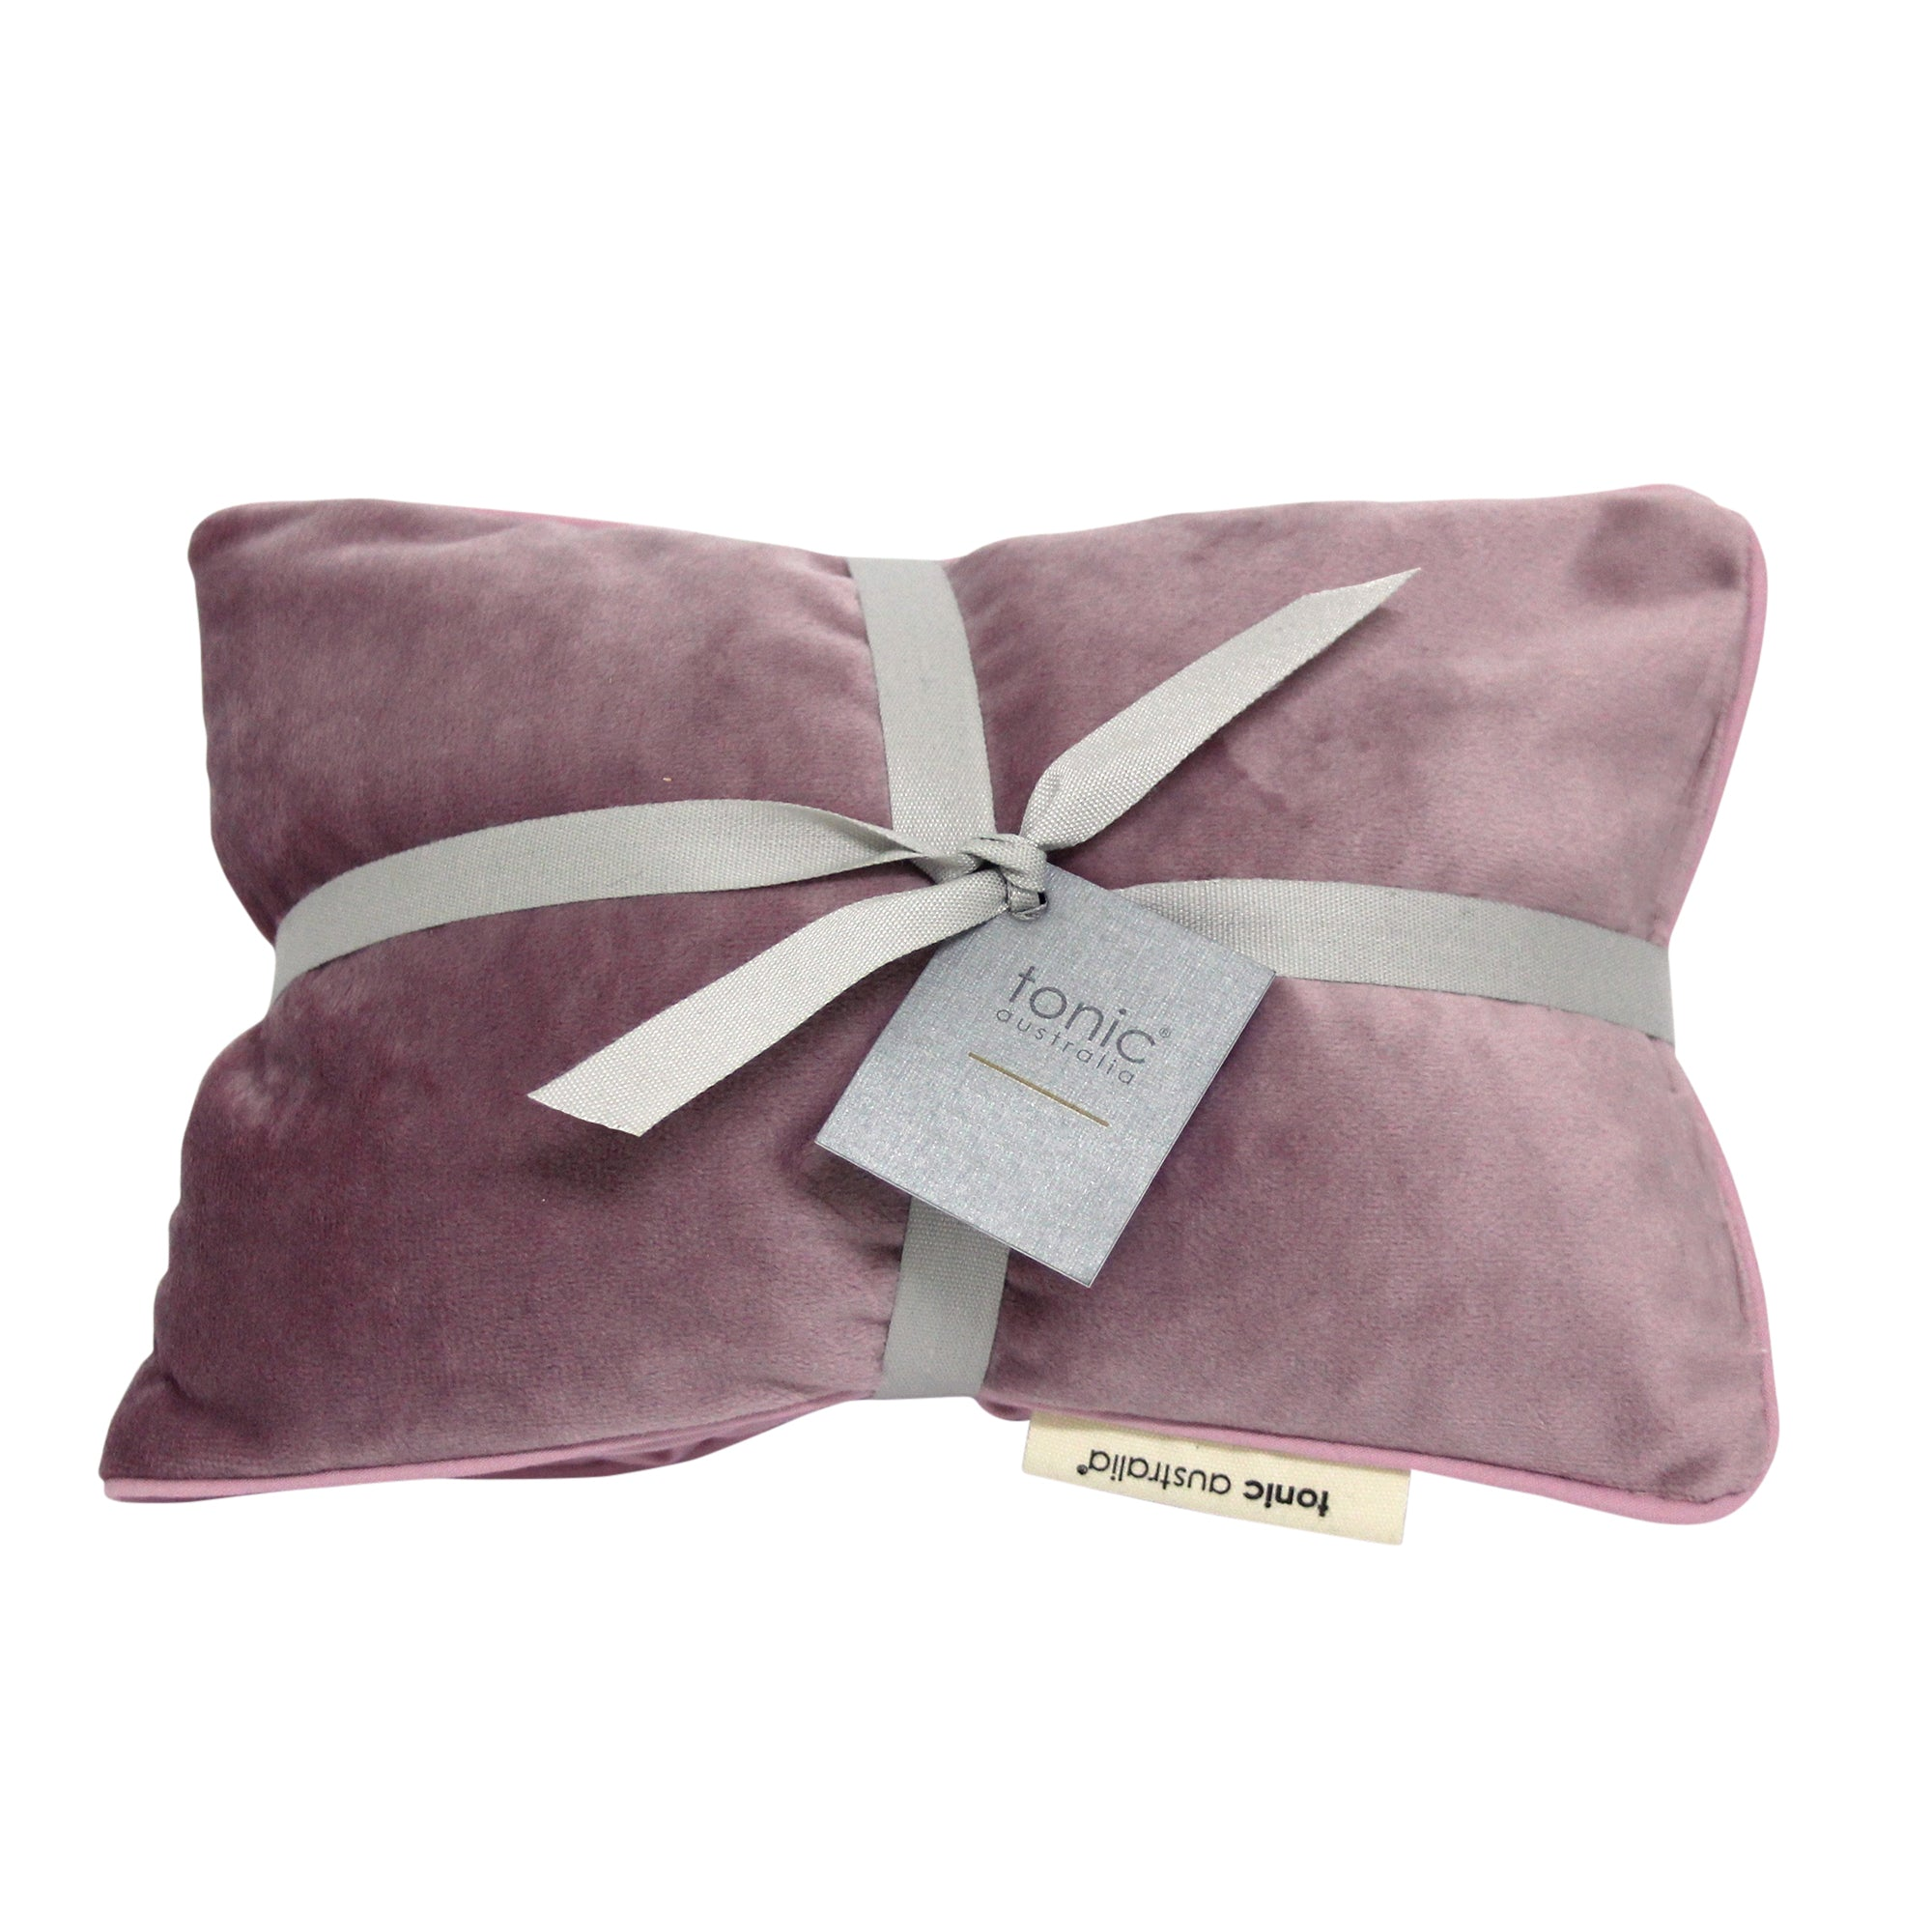 Tonic - Luxe Velvet Heat Pillow - Musk